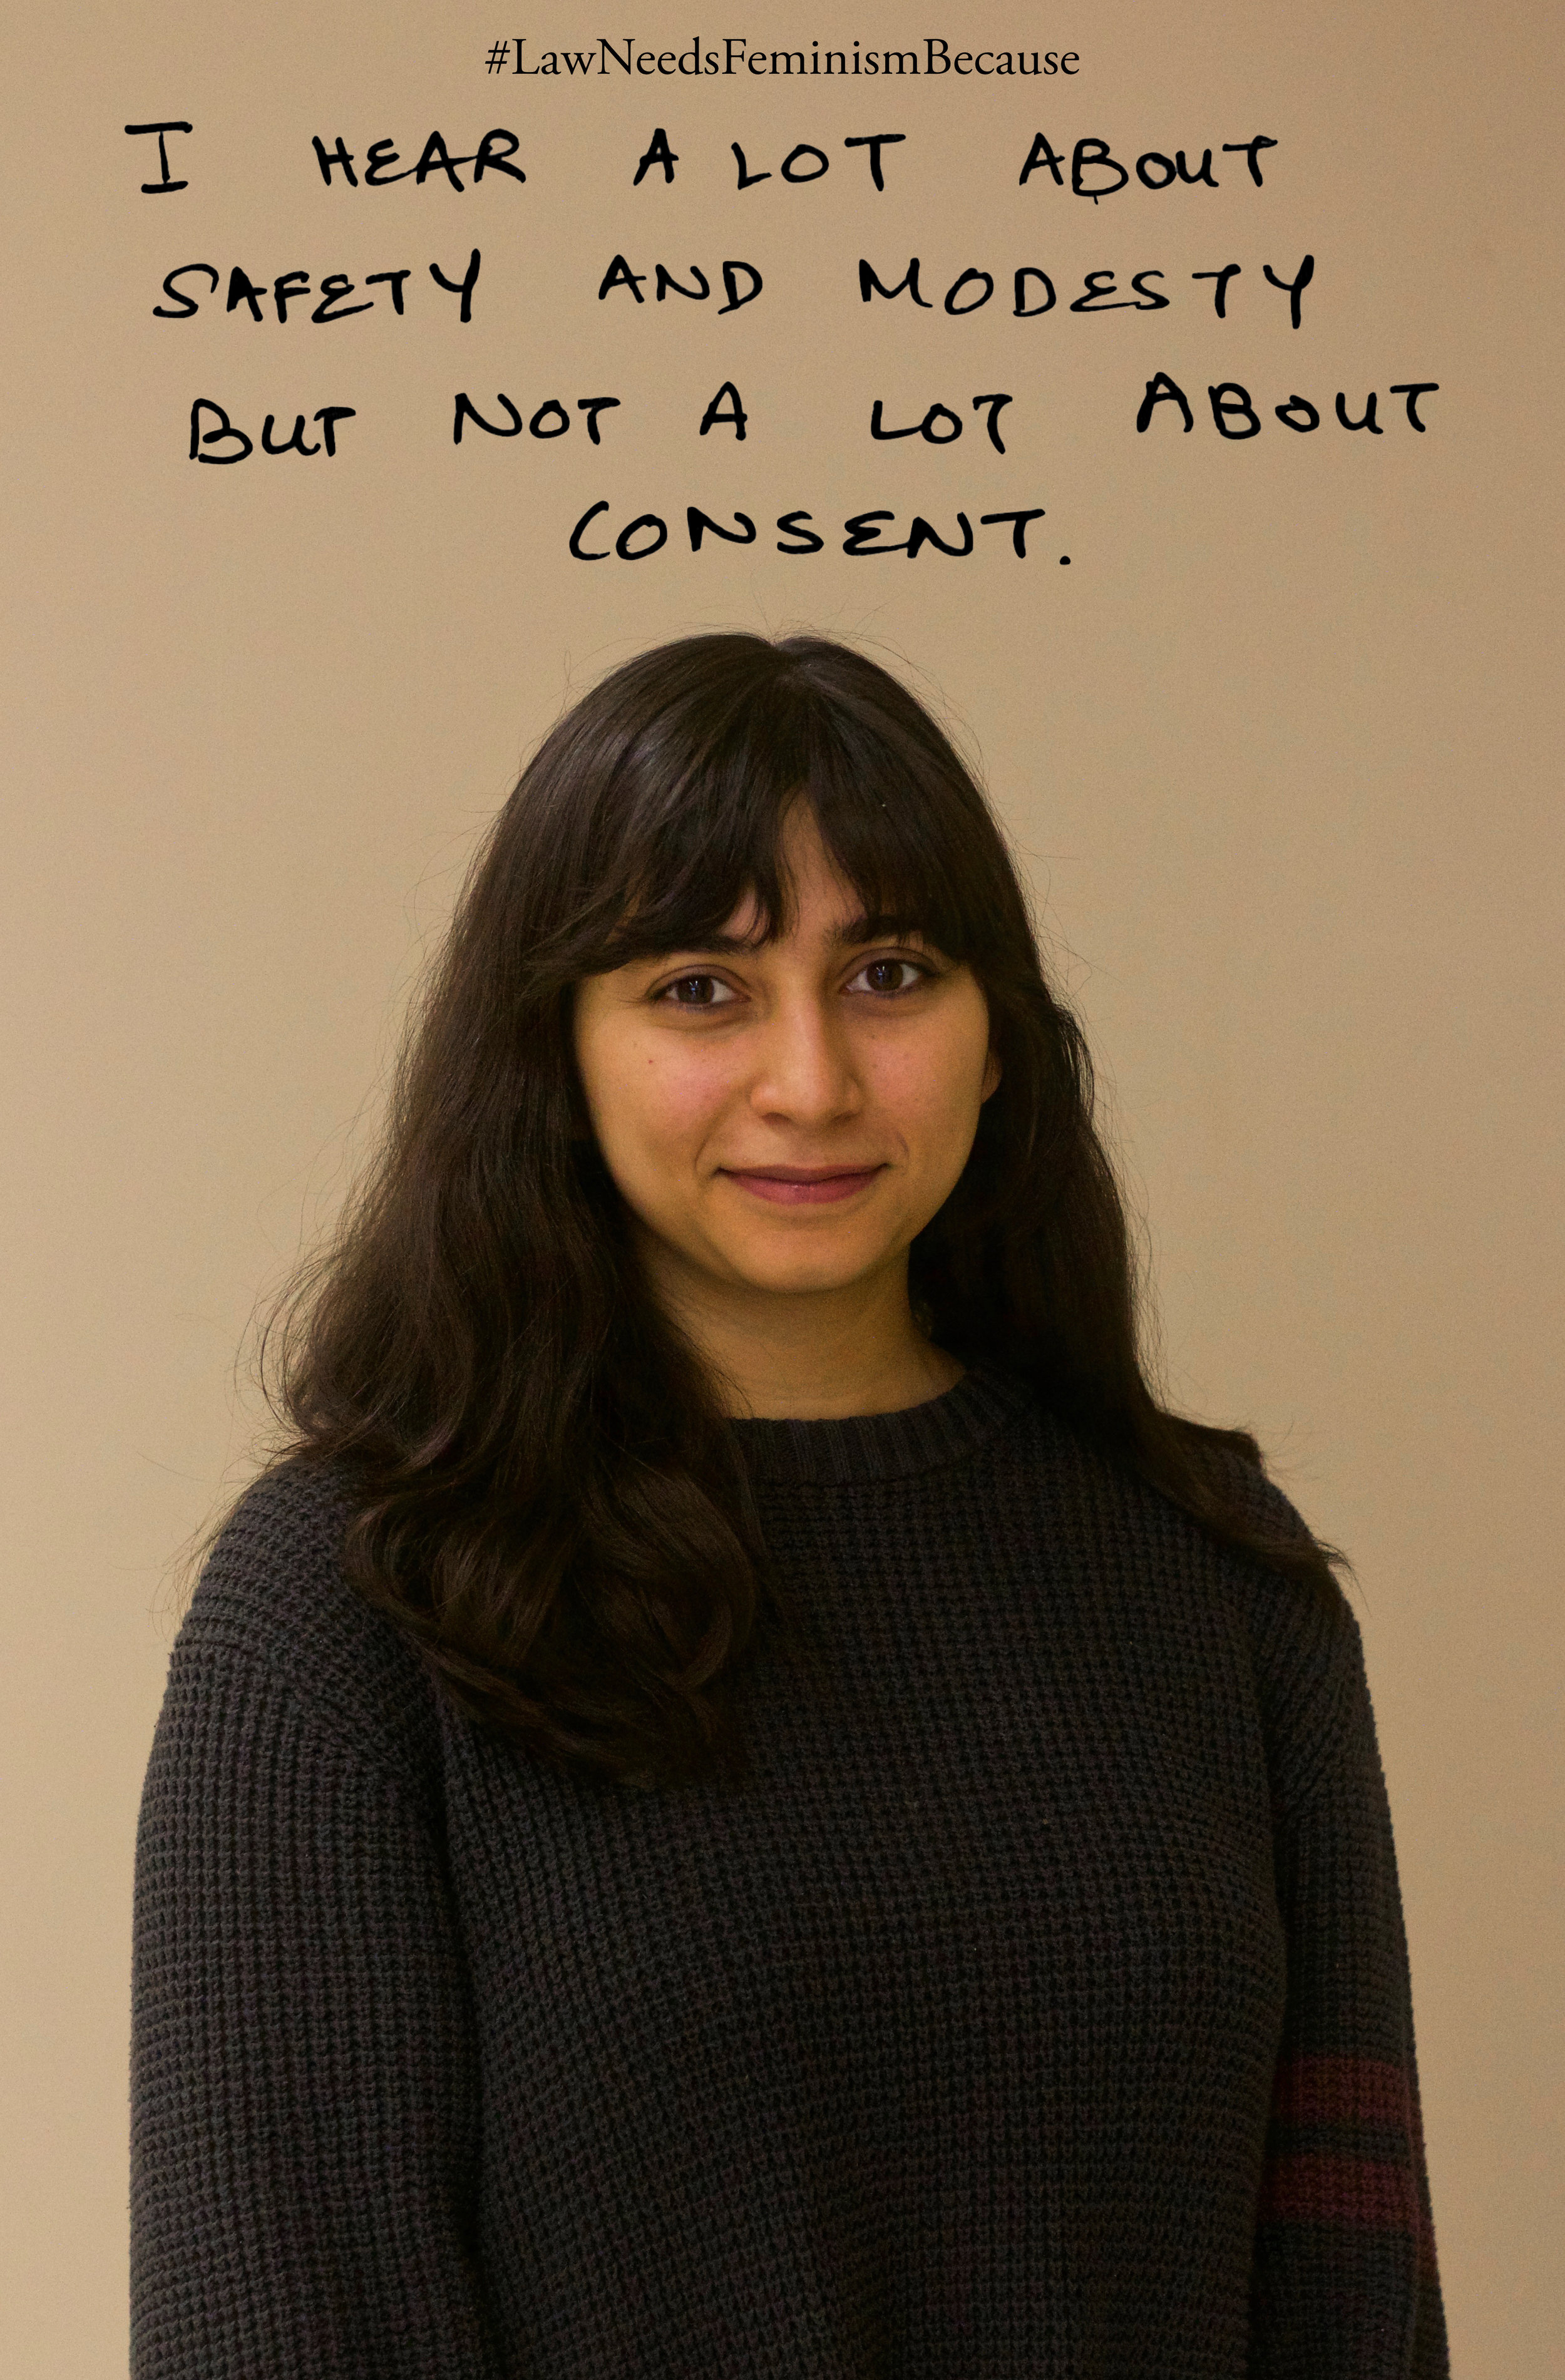 "Law Needs Feminism Because  ""I hear a lot about safety and modesty but not a lot about consent"""